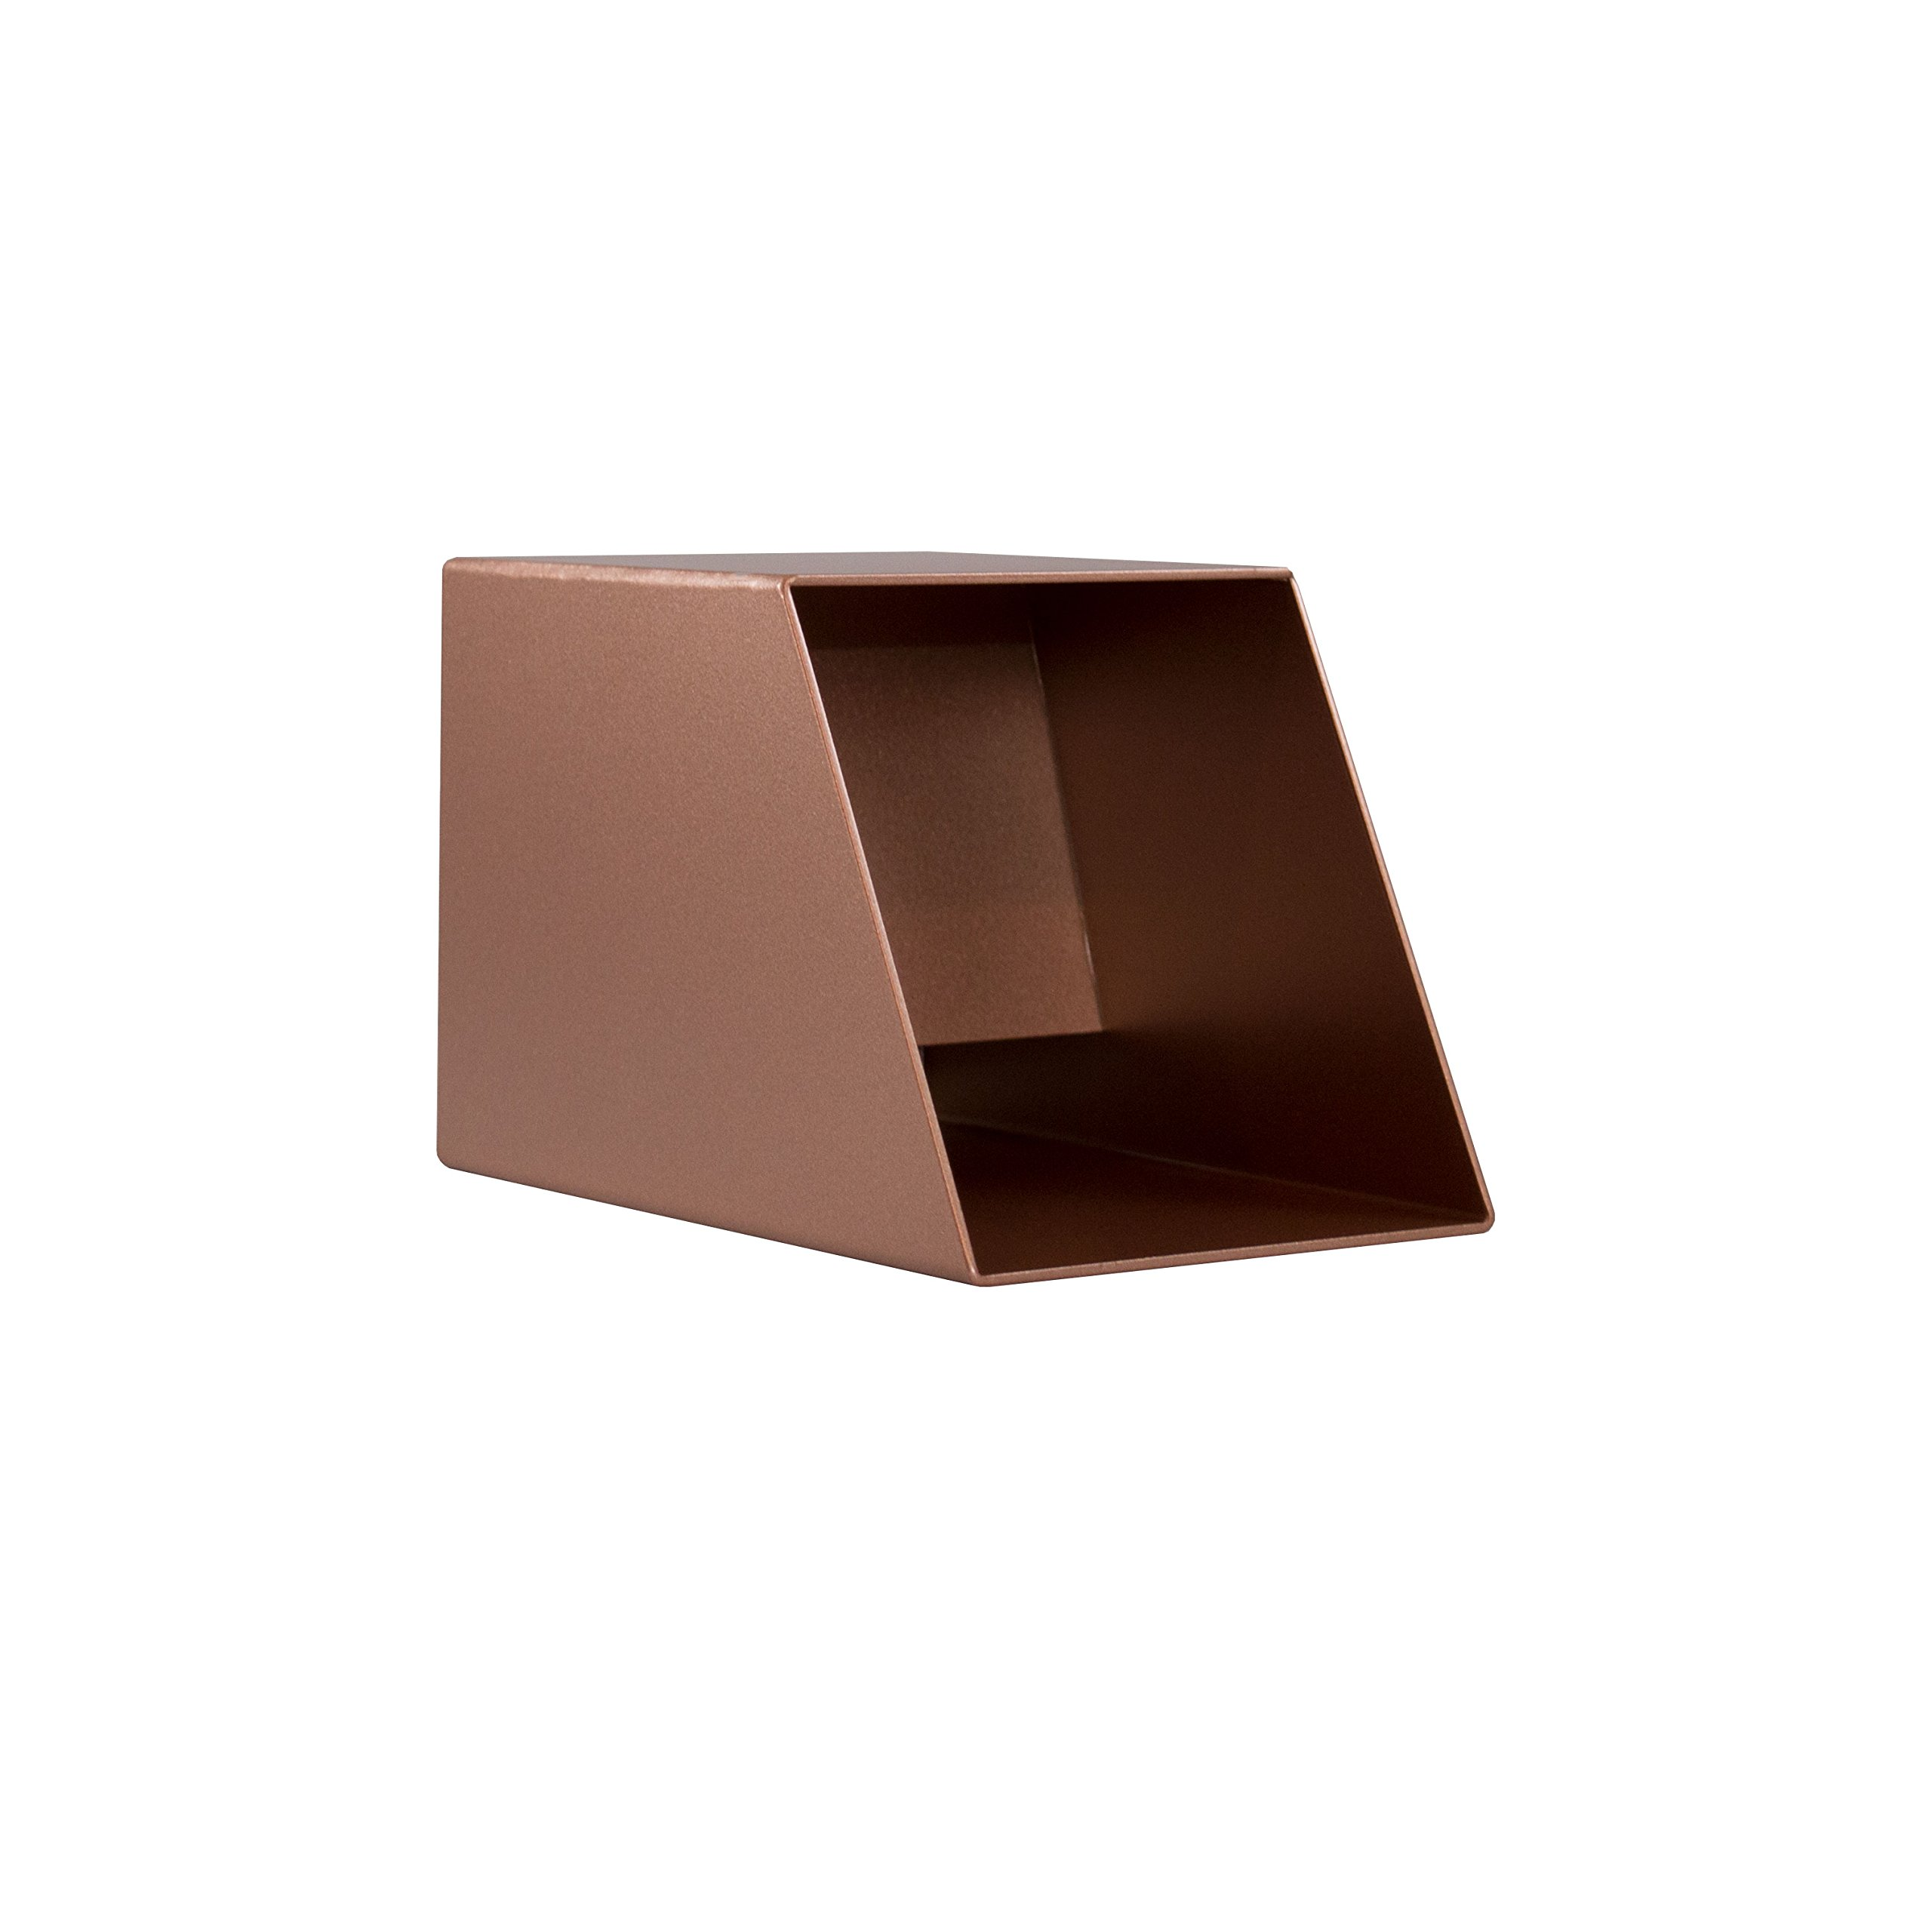 Cecetto 4'' Sqaure Water Fountain Spout Scupper for Pool Pond Fountain Water Feature - Copper by Majestic Water Spouts